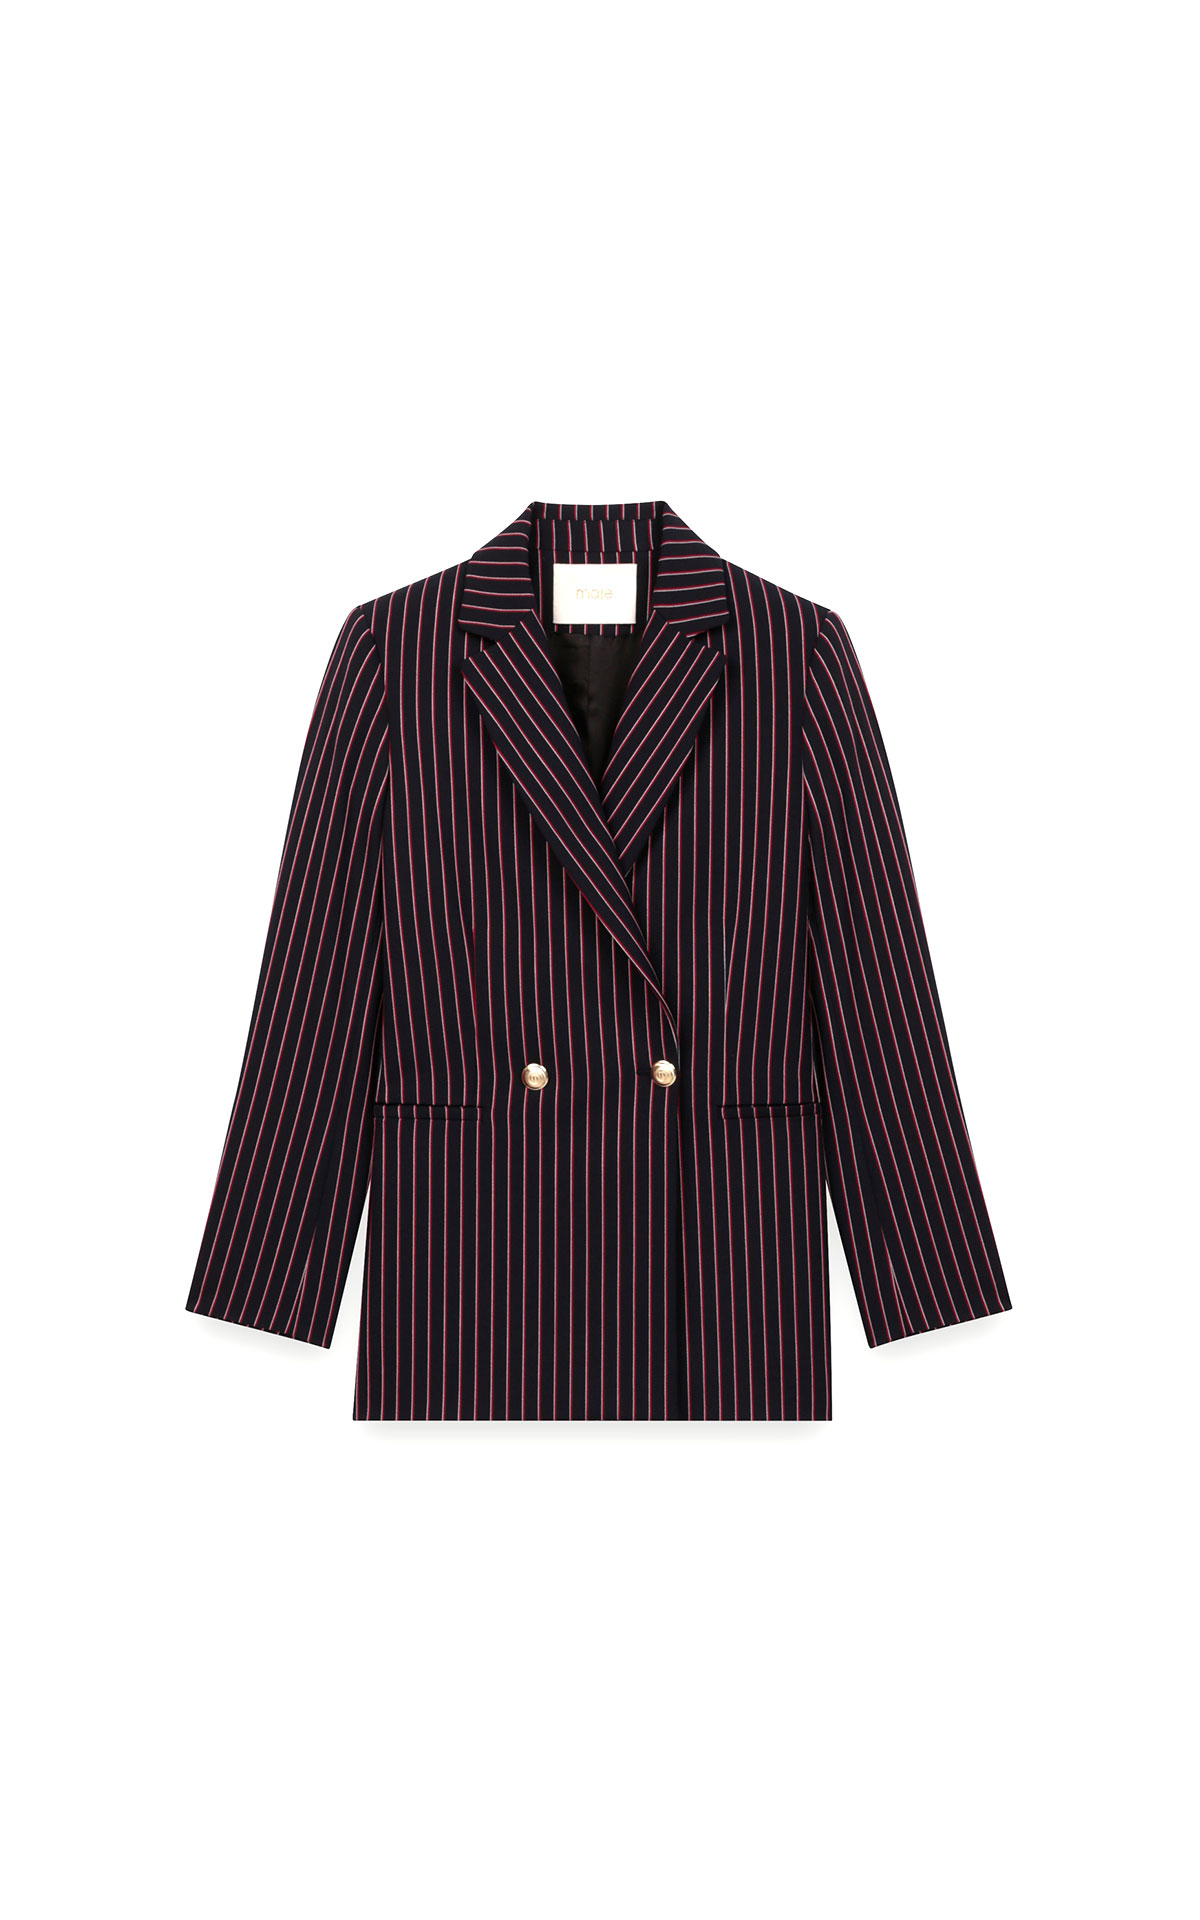 Maje striped double-breasted jacket at The Bicester Village Shopping Collection